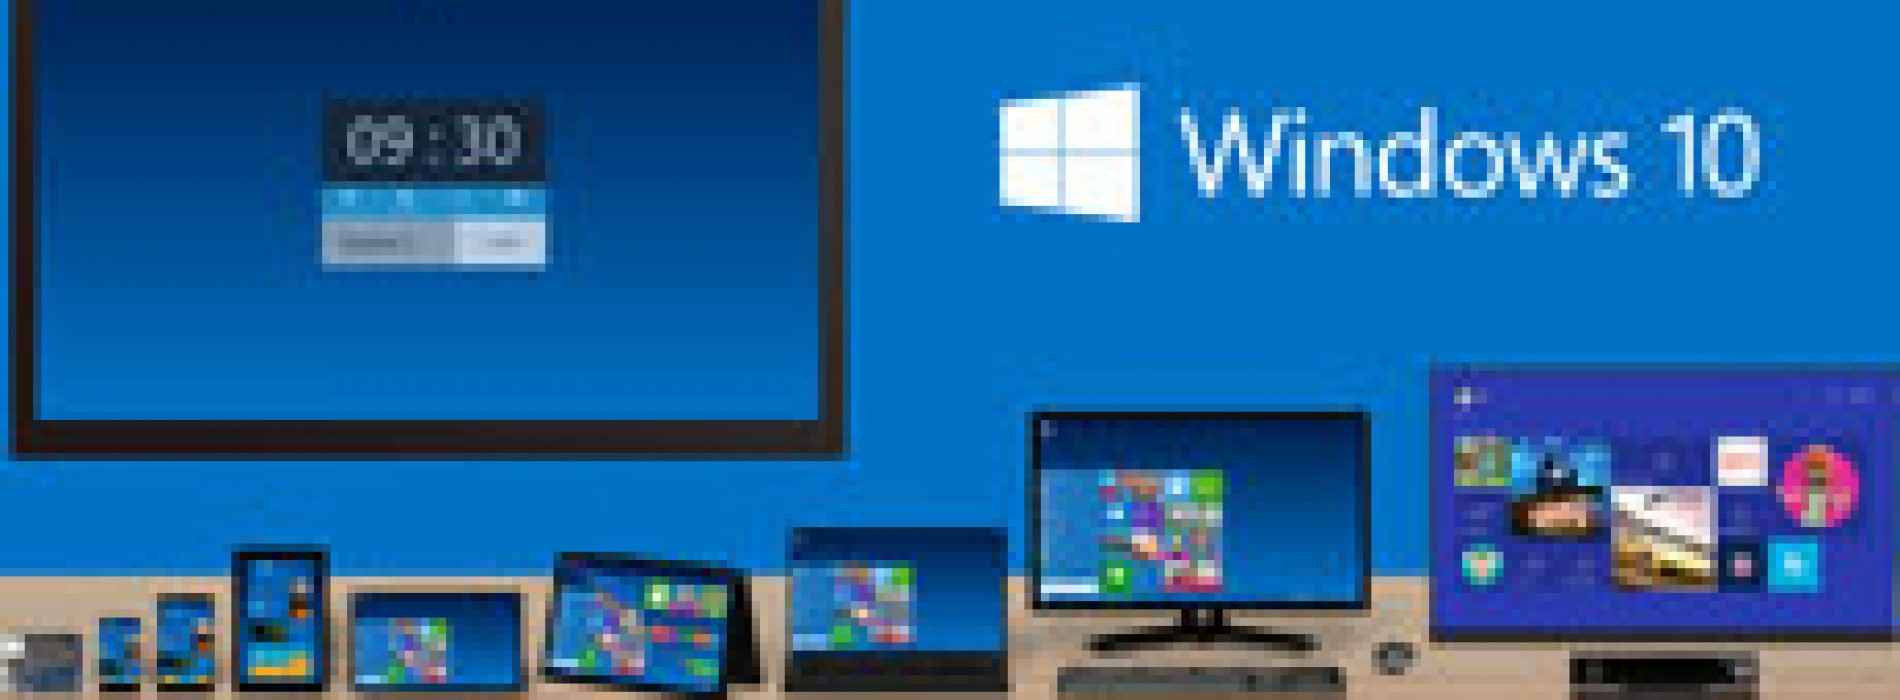 Windows 10 la nueva generación de Windows